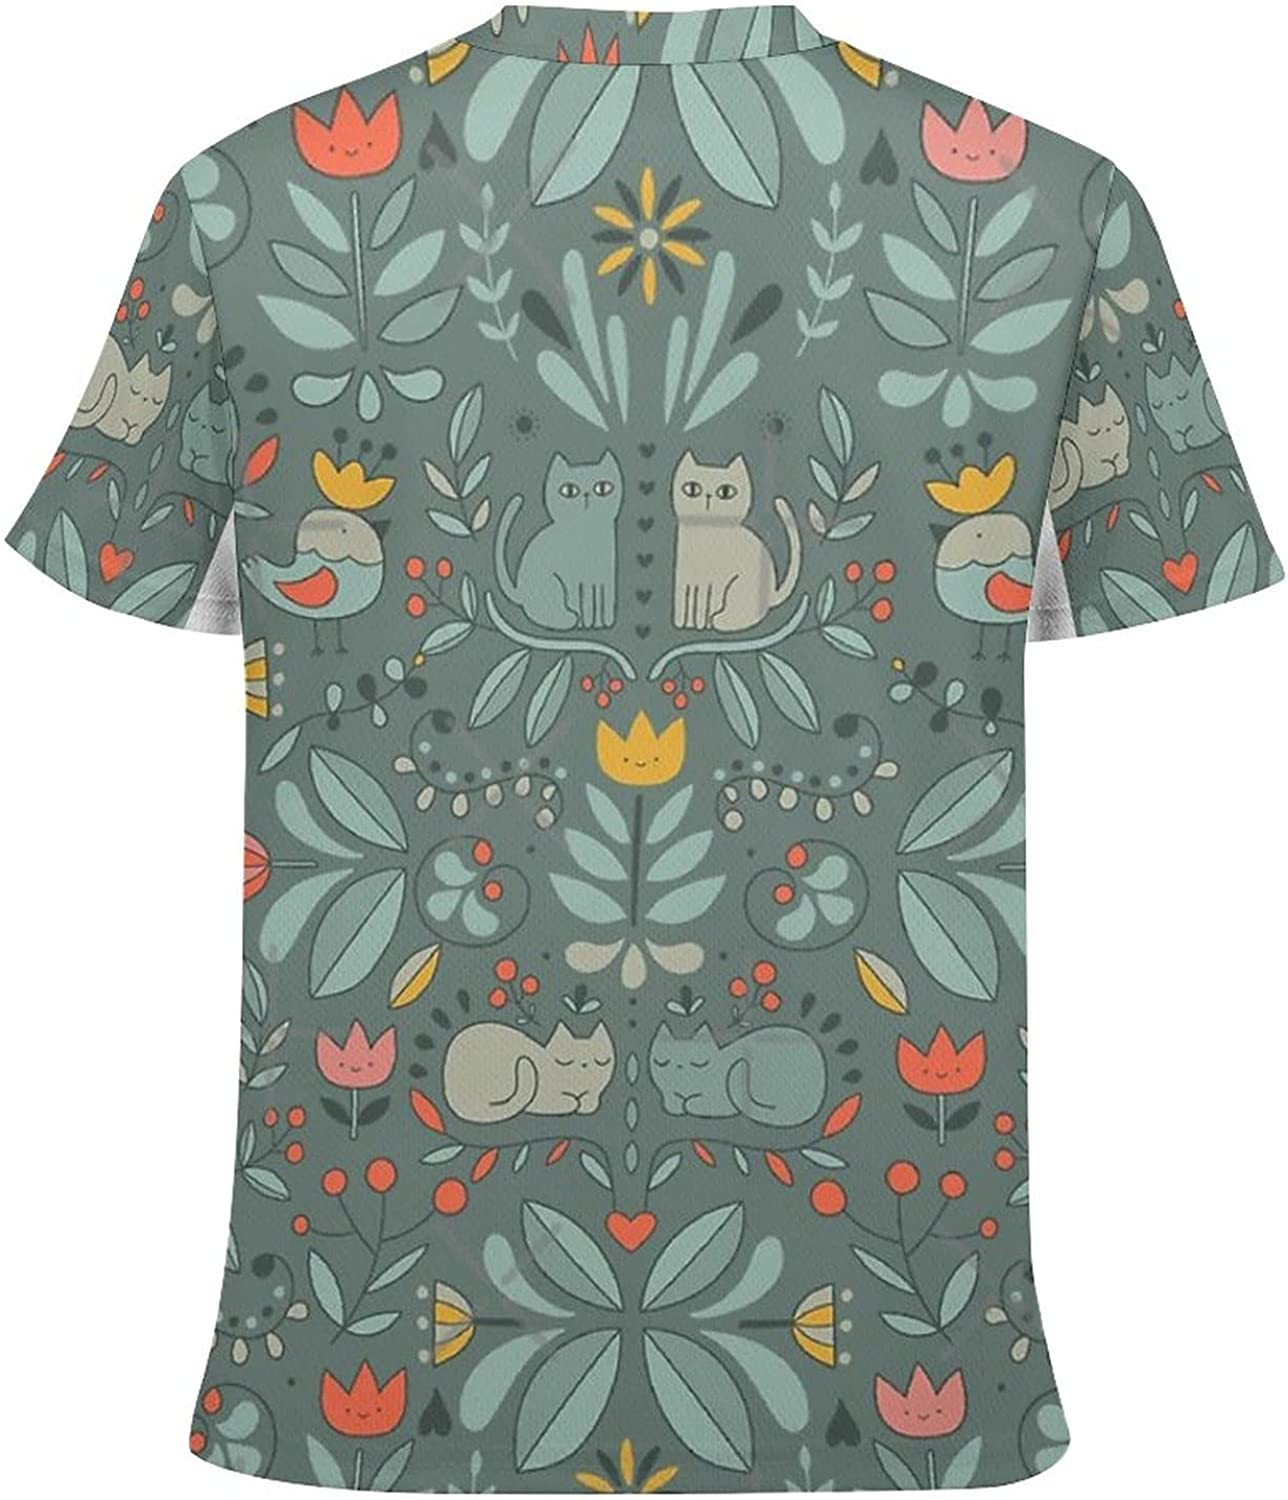 Orange Flower Scarf Youth Quick Dry Short-Sleeved Breathable Full Print T-Shirt Set top